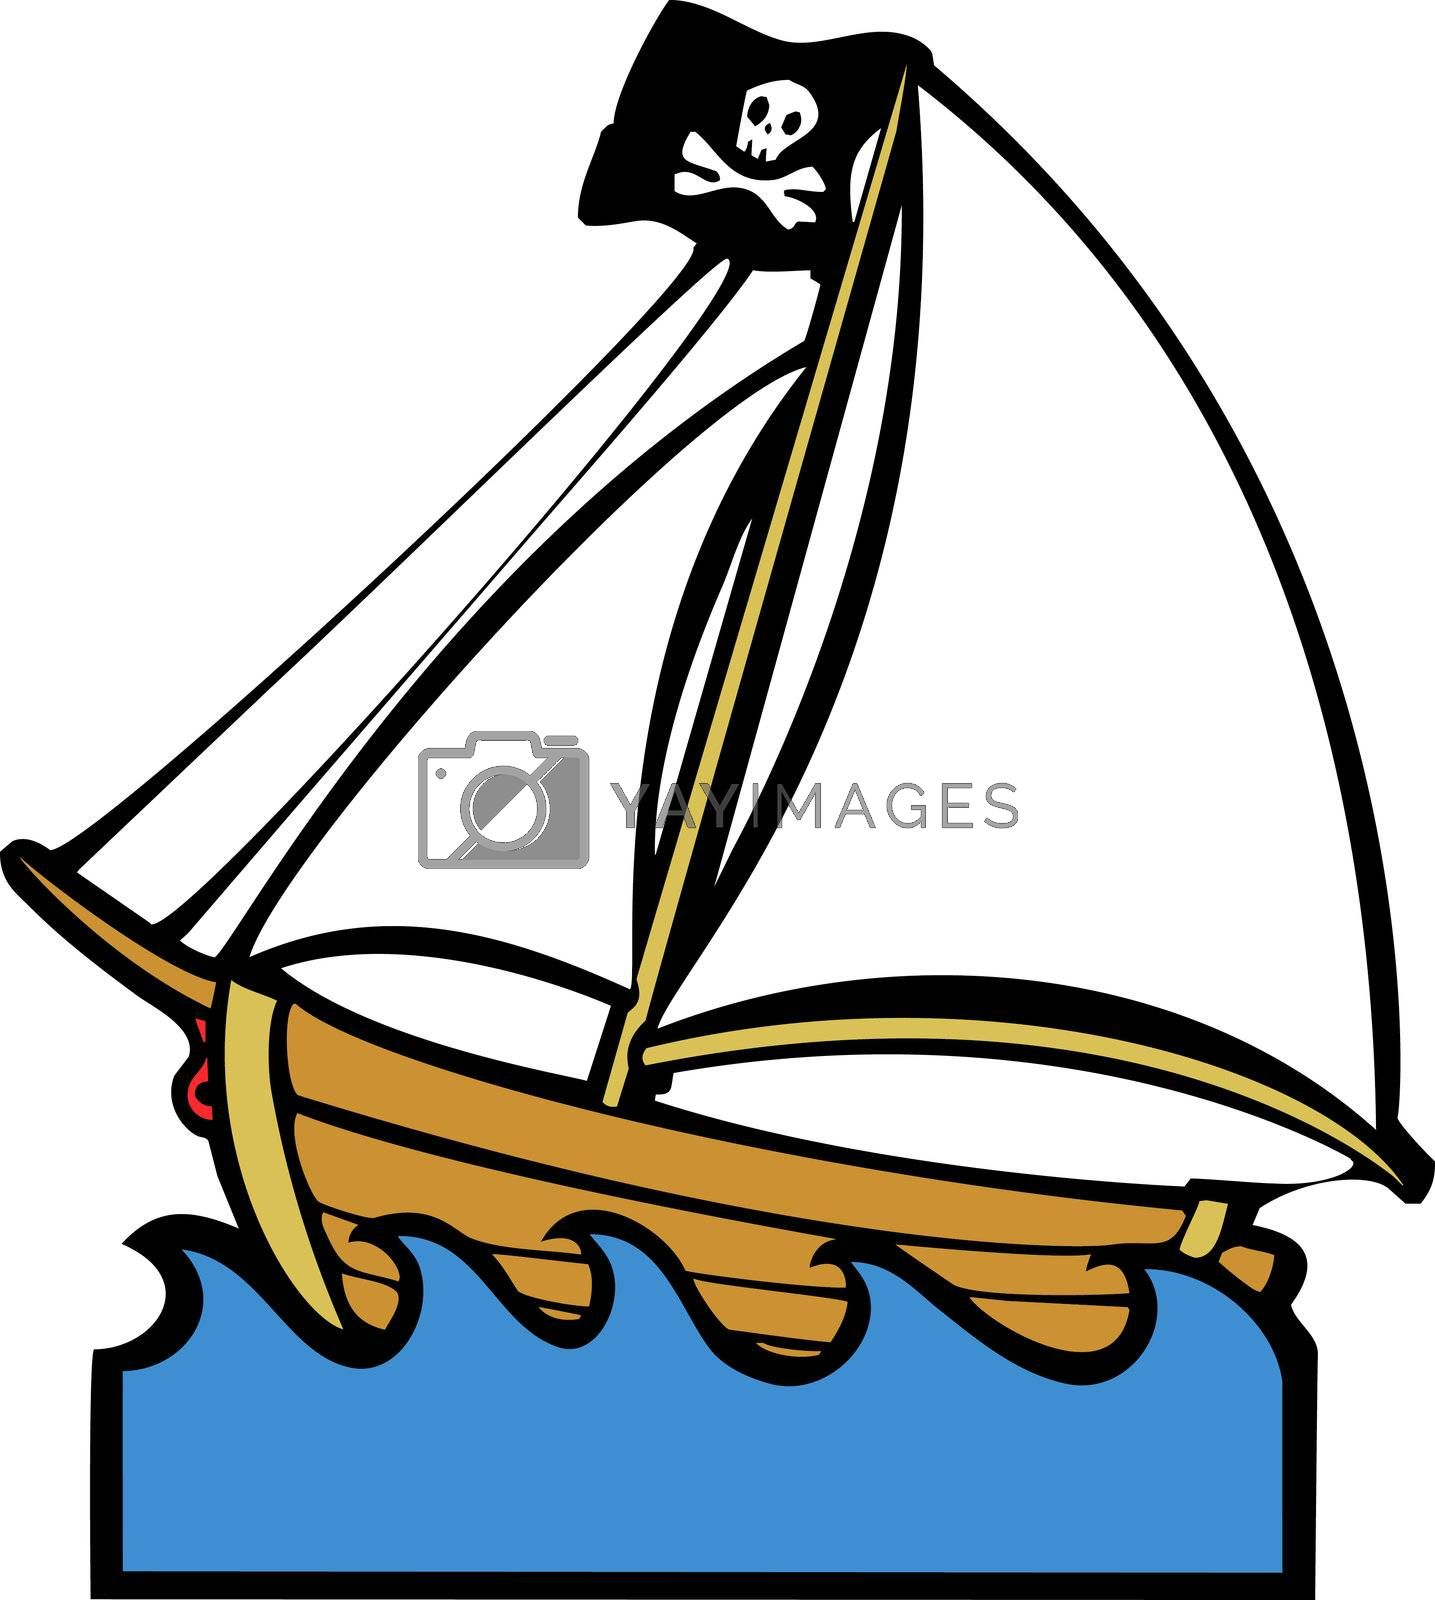 Simple children's boat image with pirate flag and sails.